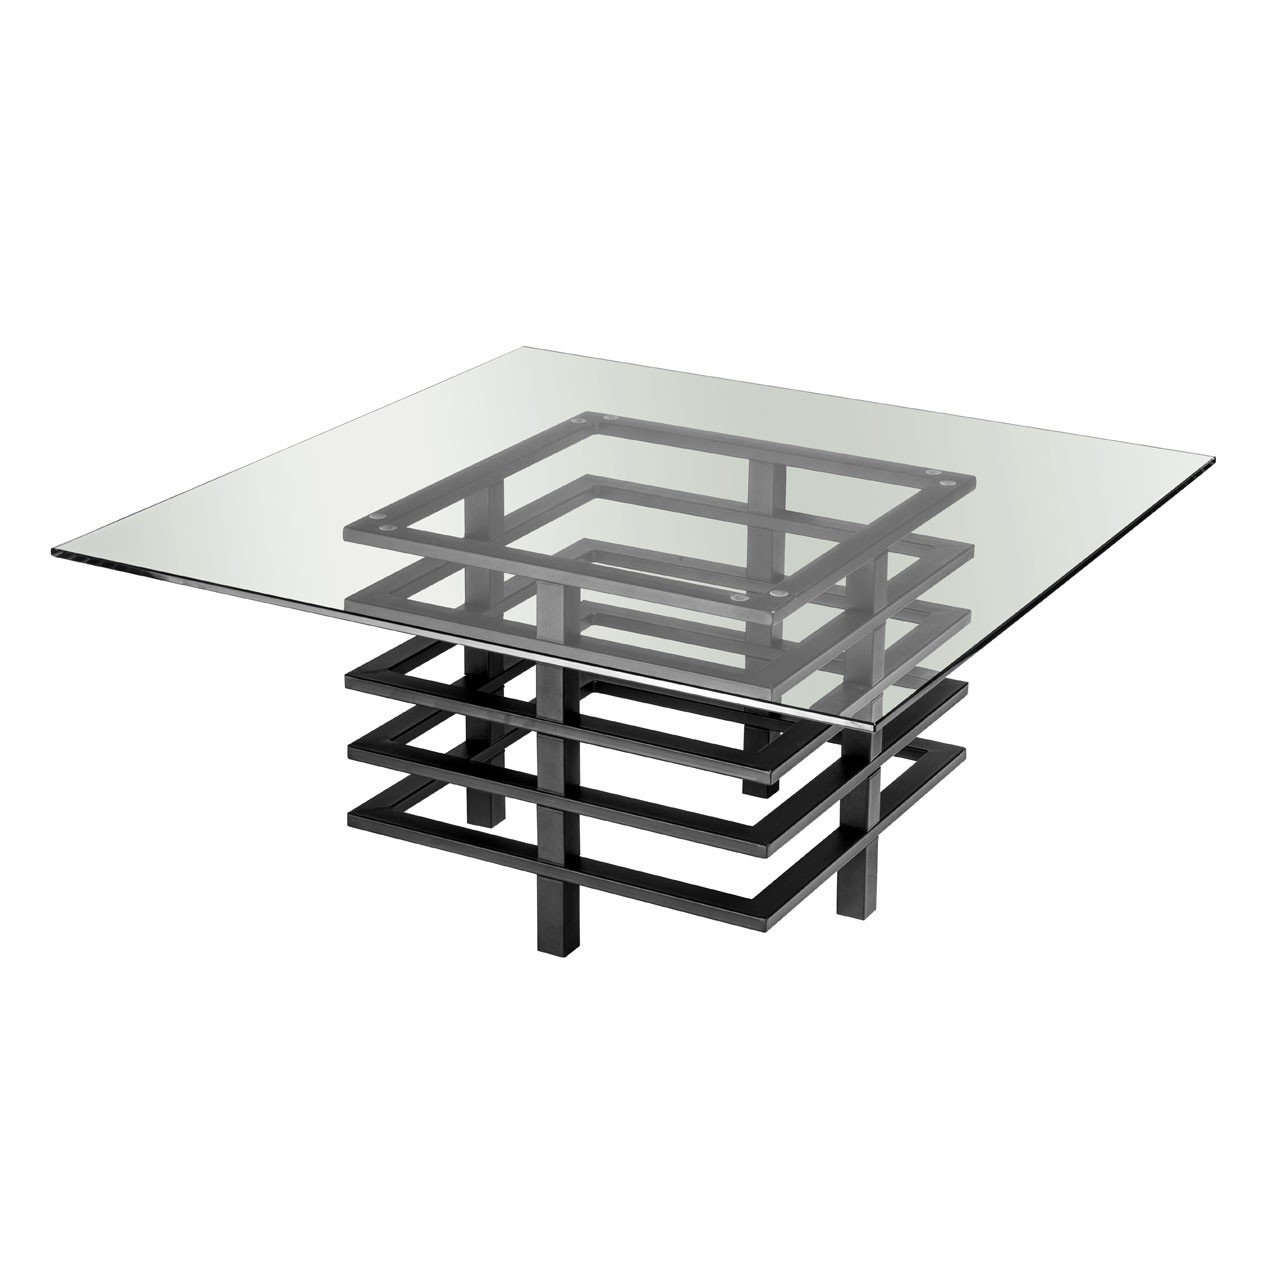 Monaco Coffee Table, Clear Glass/Black Powder Coated Metal Frame